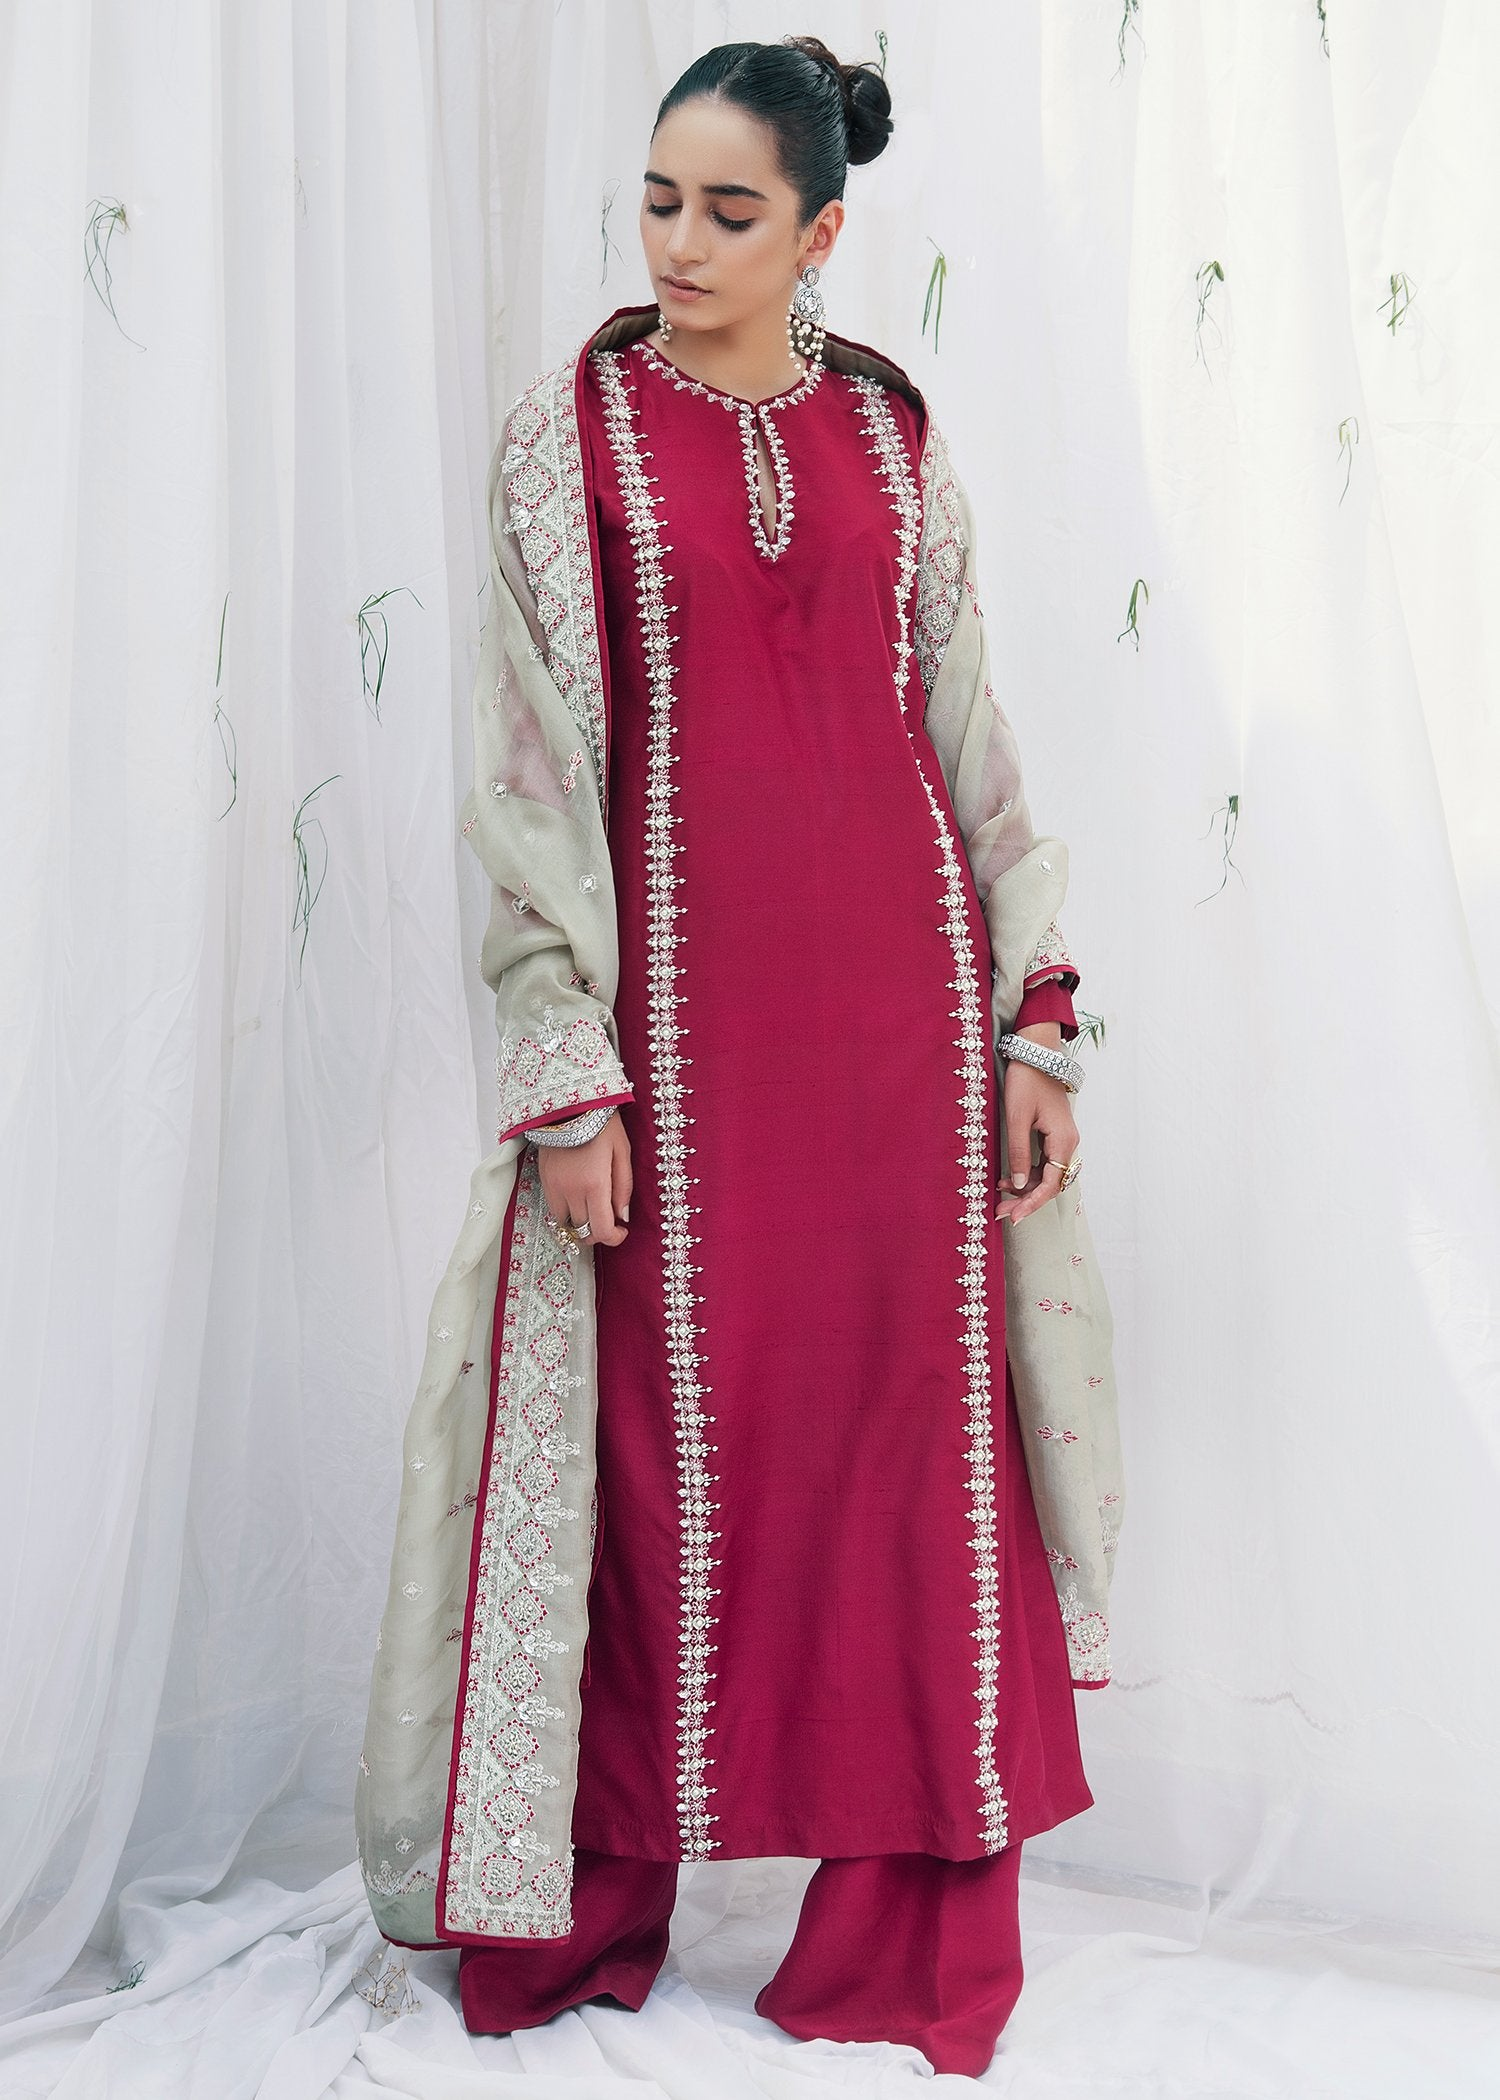 Cherry Wine Pakistani wedding dresses